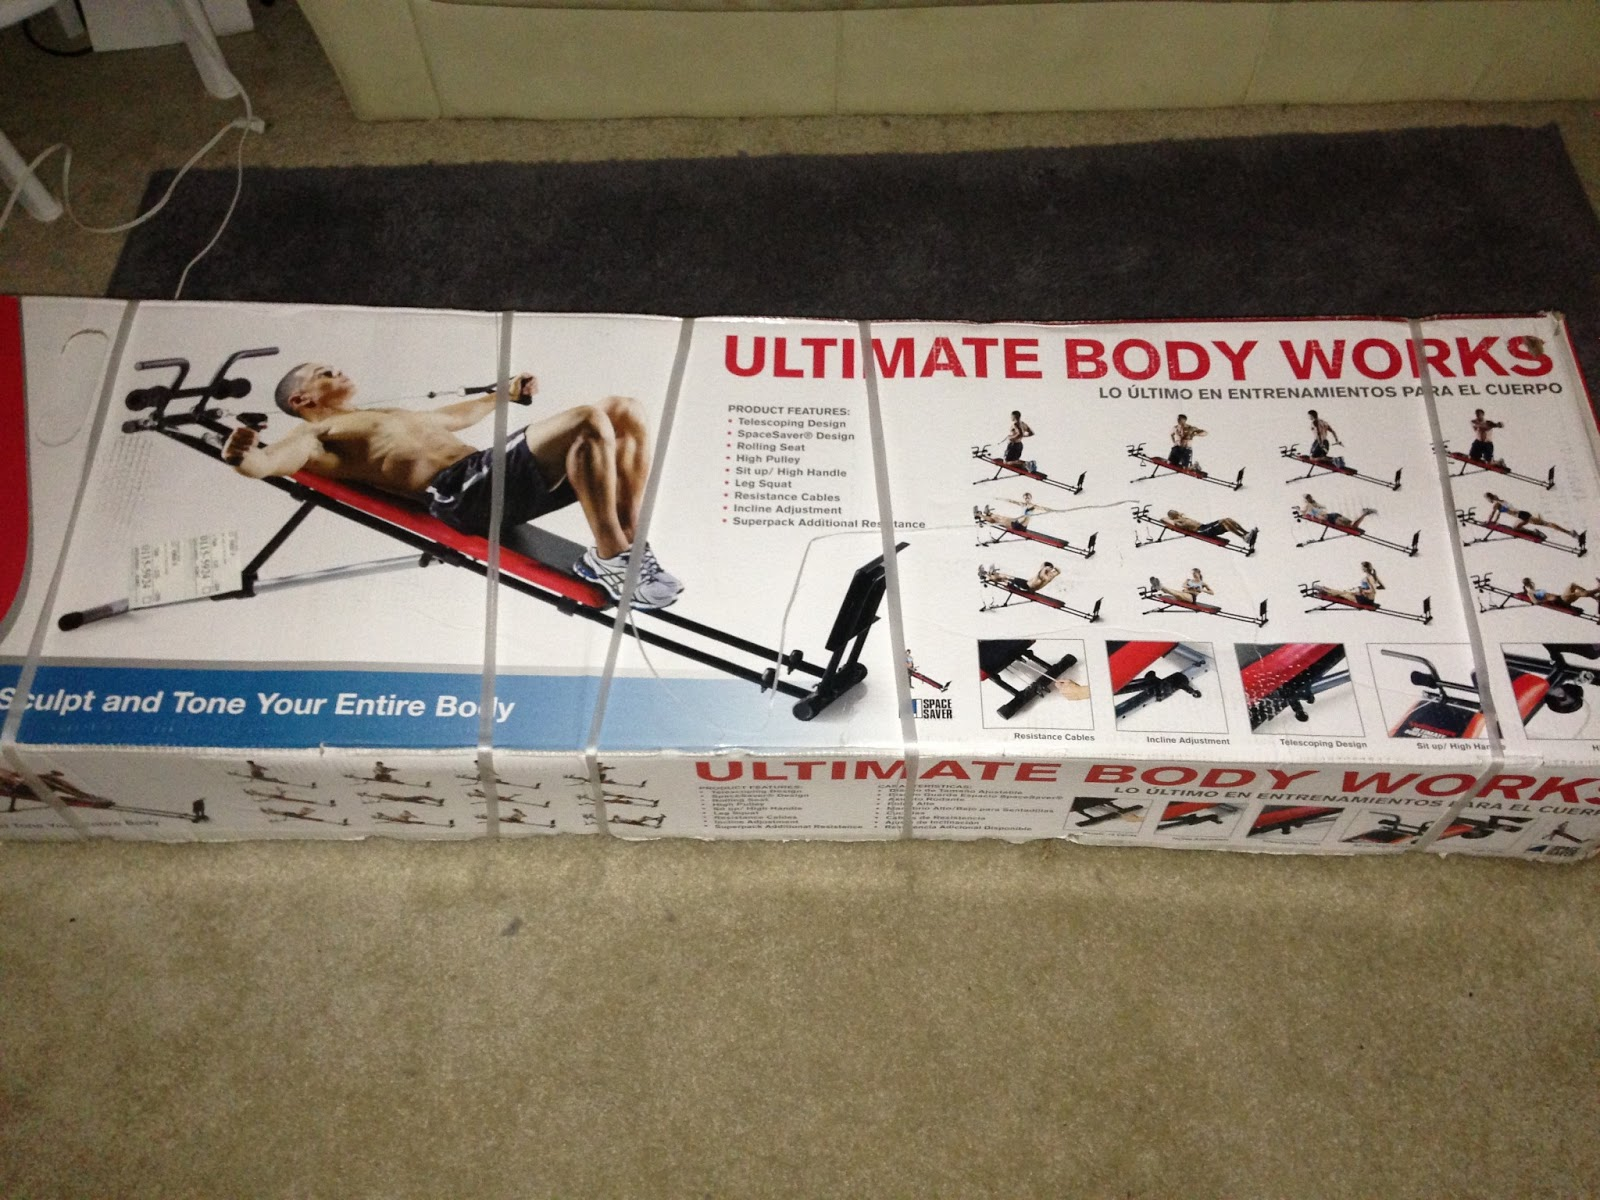 Astounding image throughout printable weider ultimate body works exercises